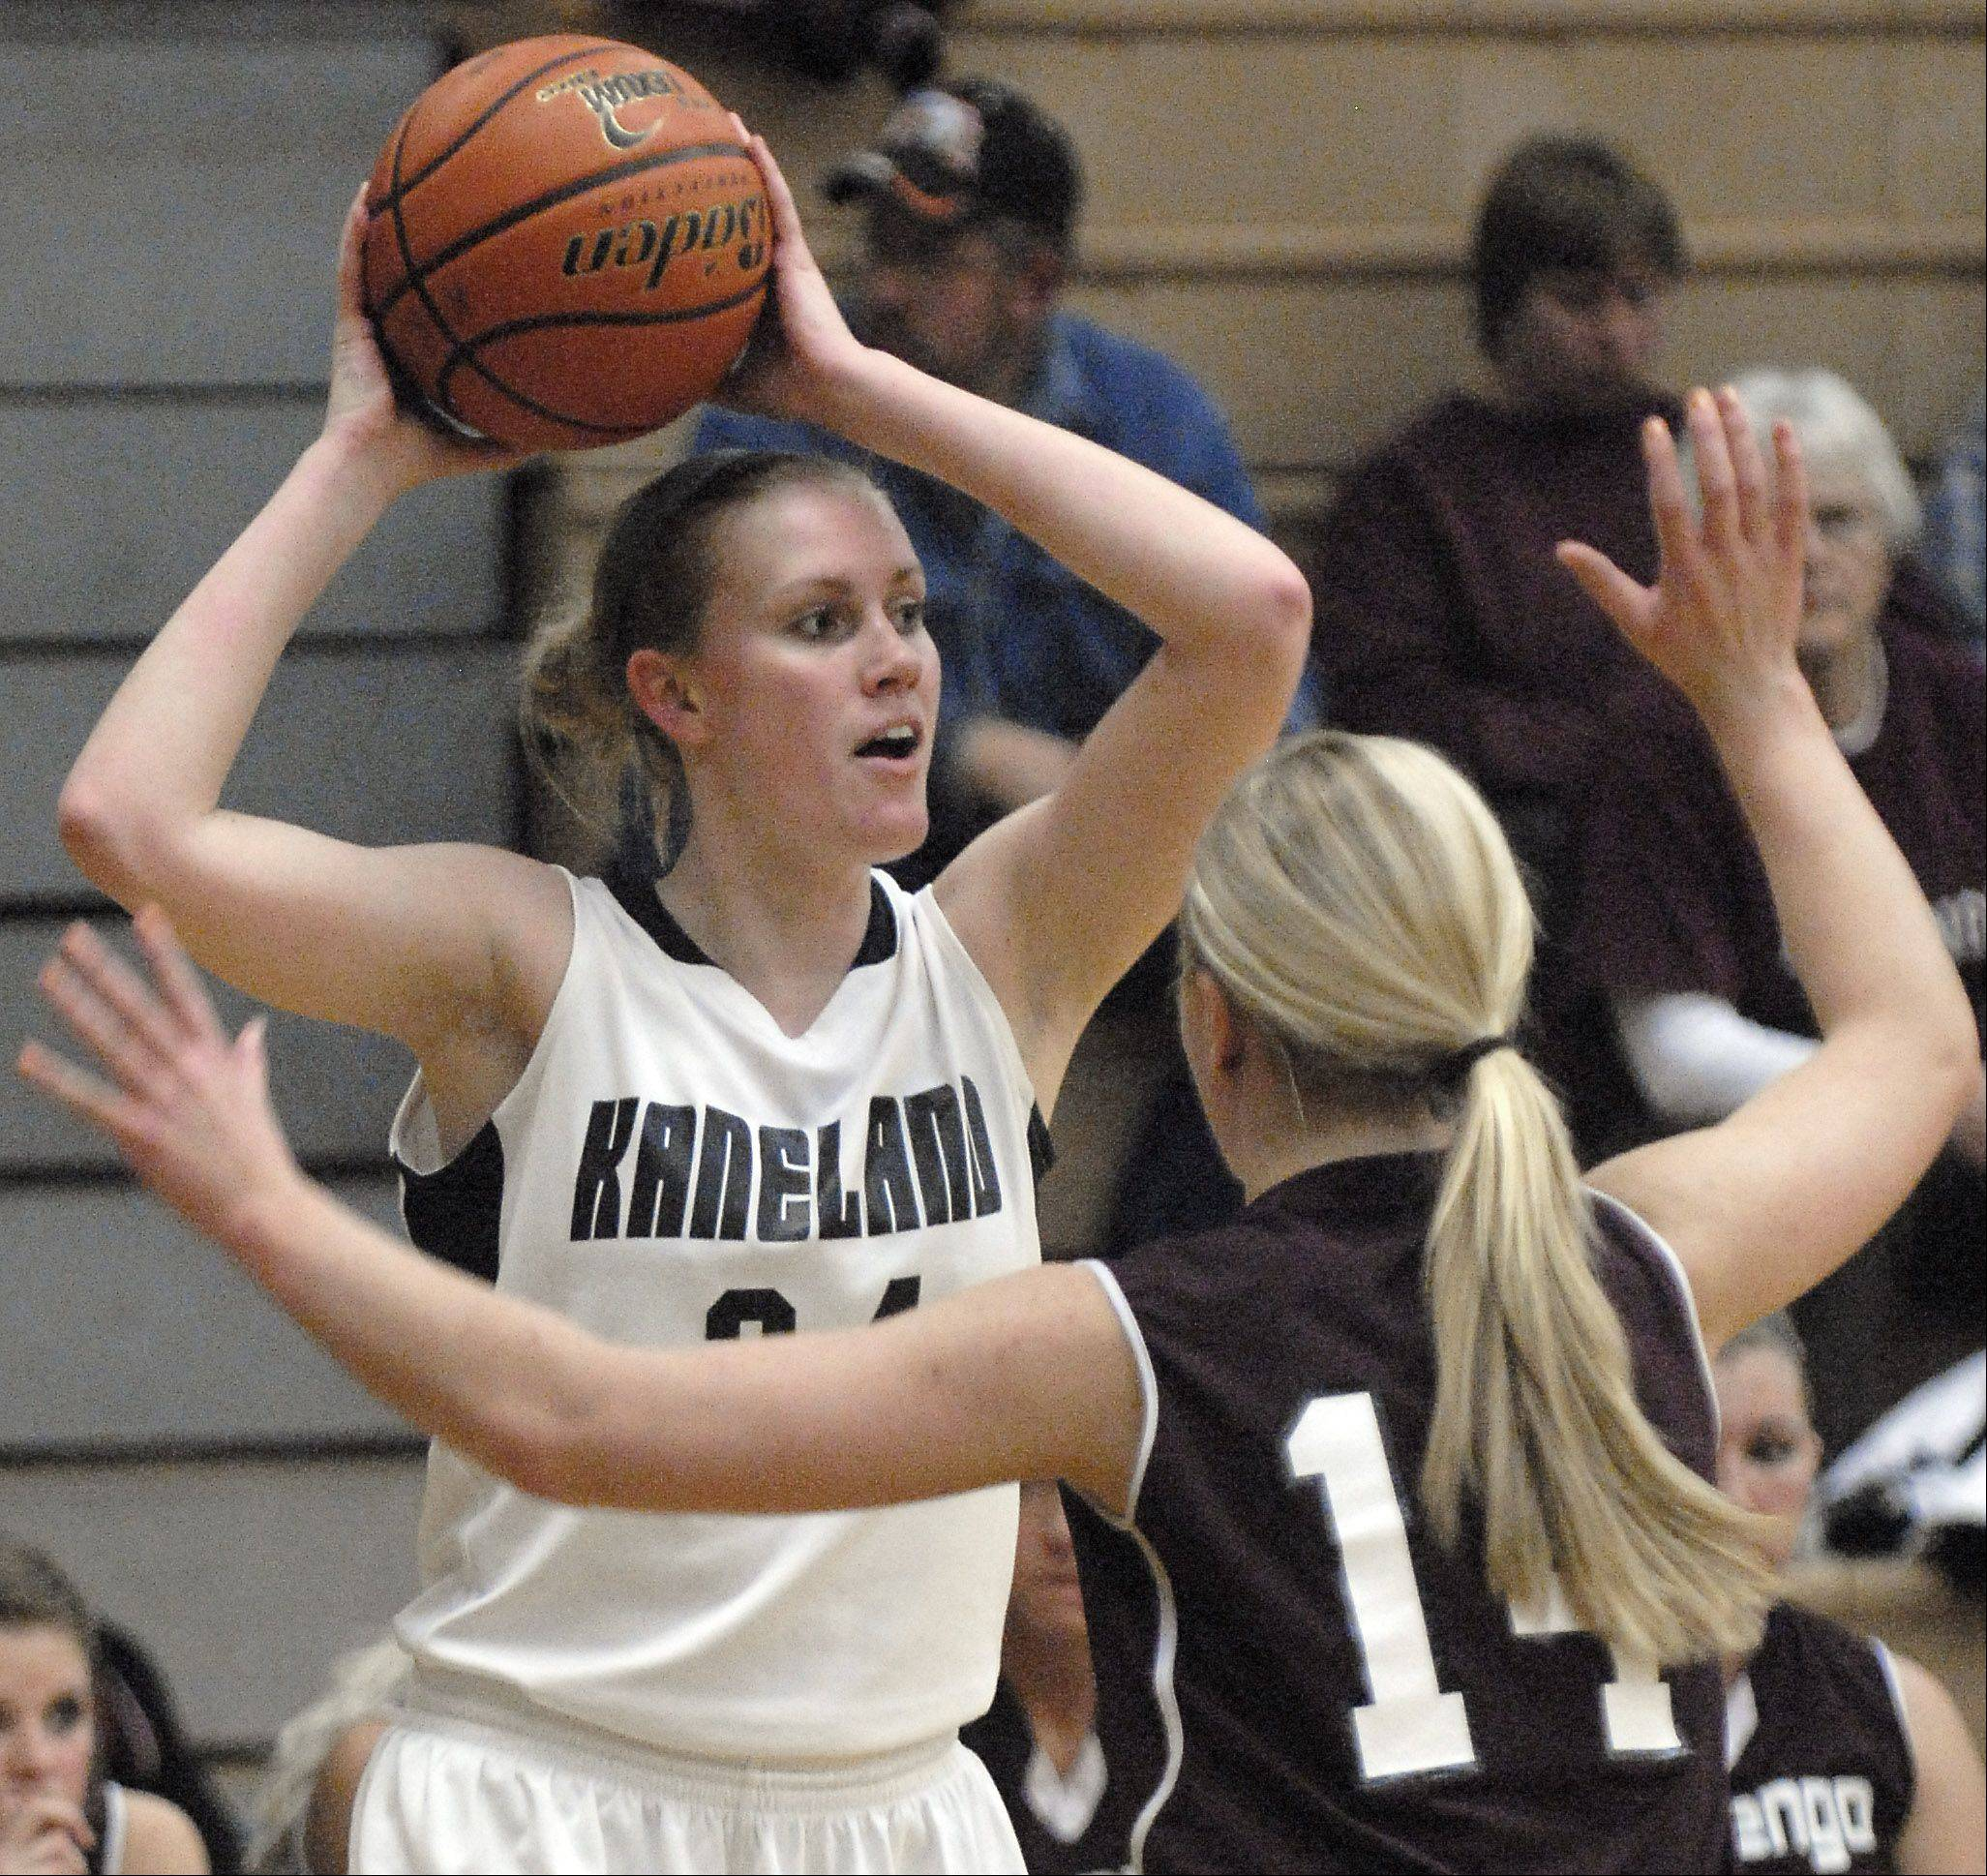 Images: Marengo vs. Kaneland girls basketball